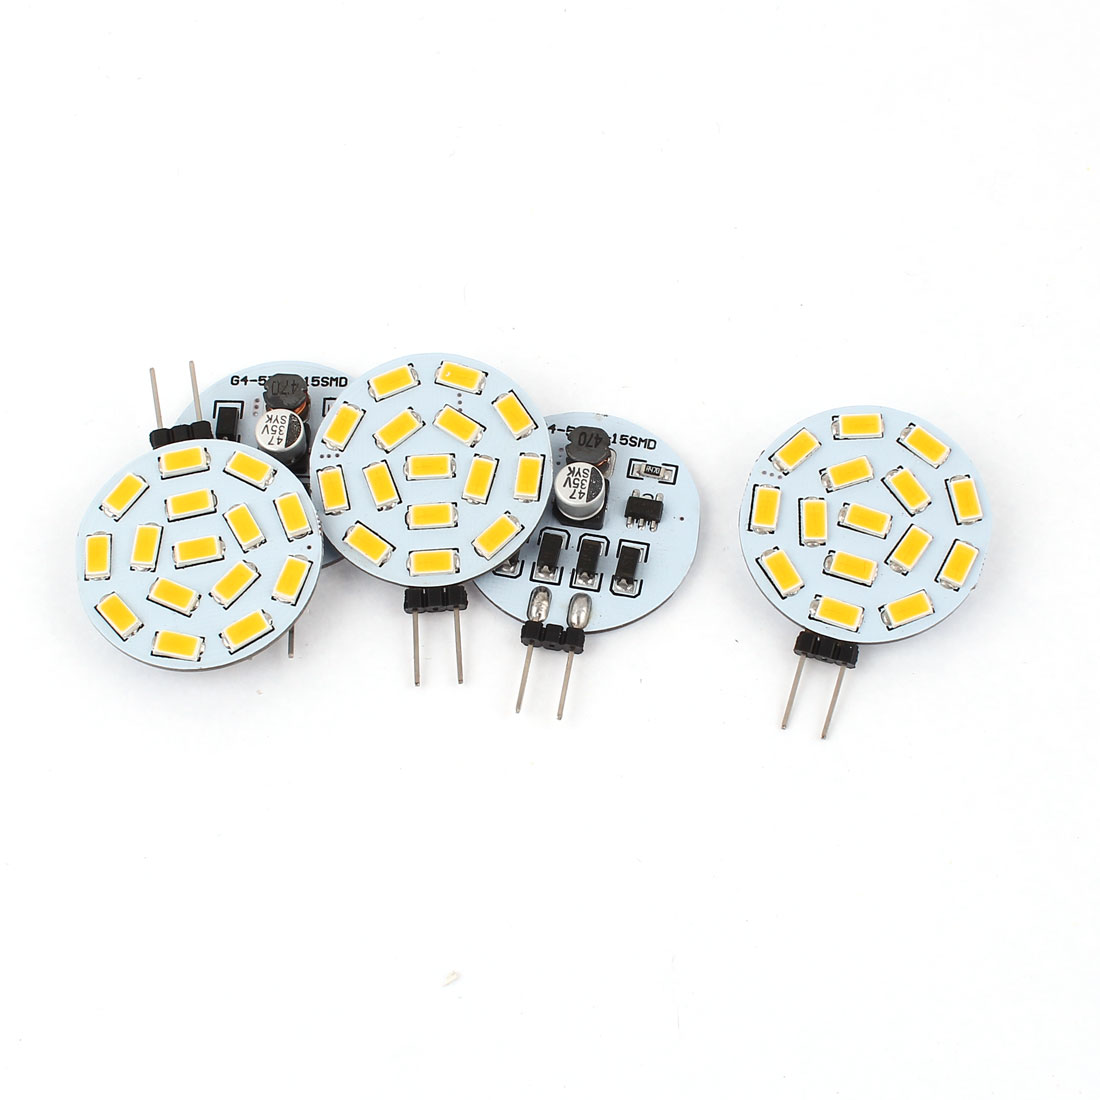 5 x G4 5730 SMD 15 LED Cabinet Marine Boat Light Bulb Lamp Warm White